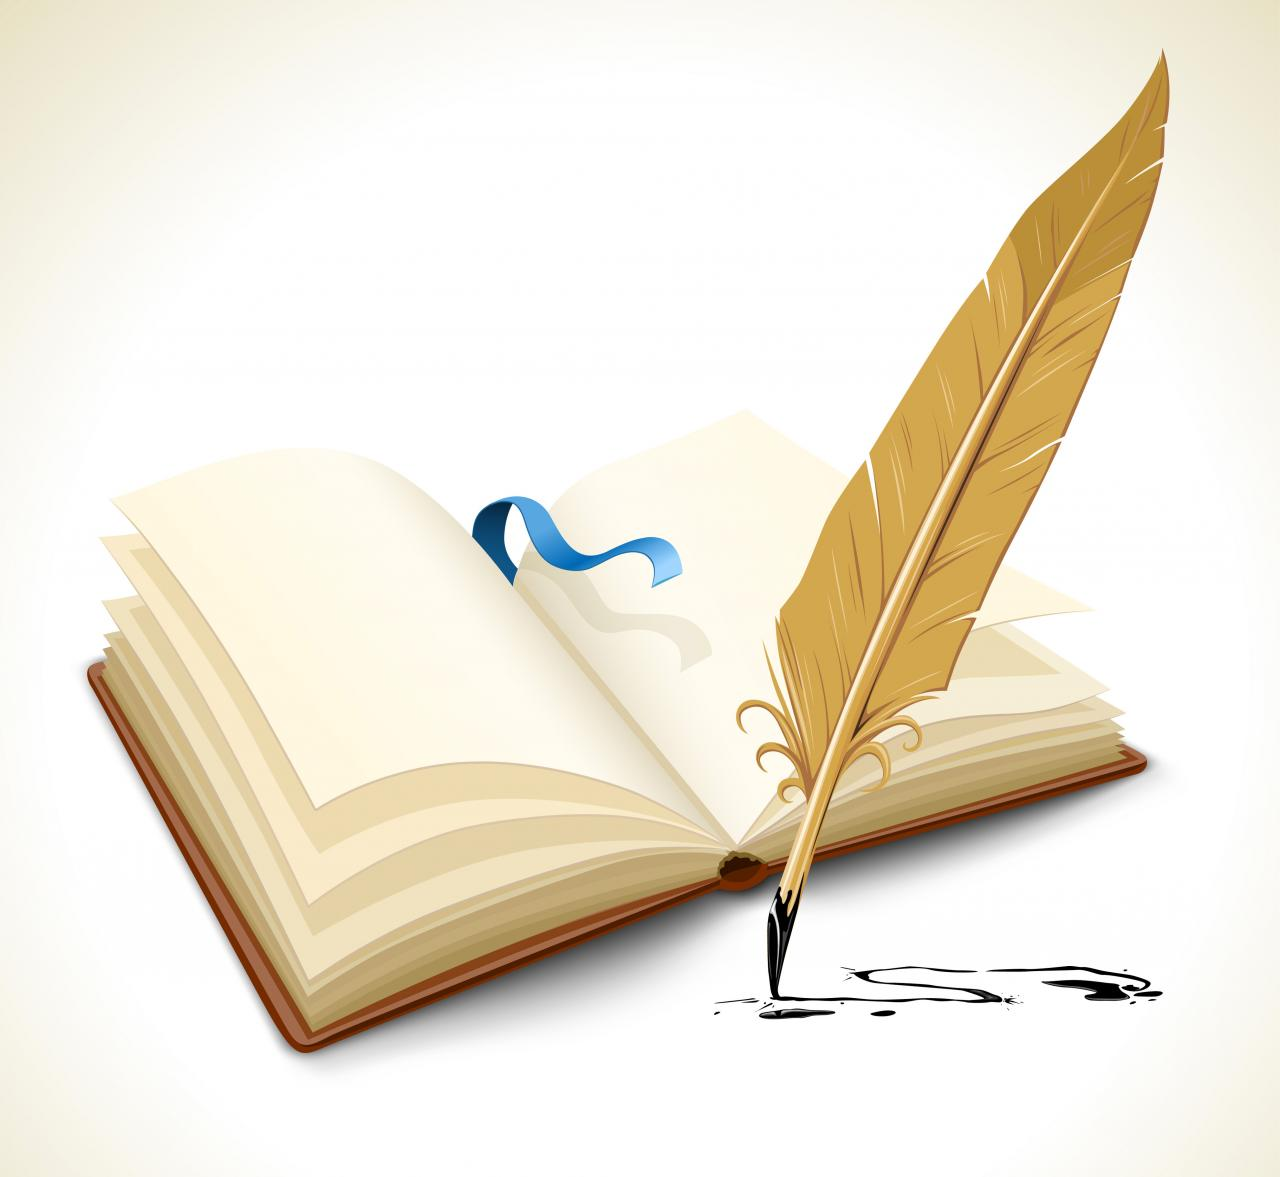 Writing a New Book? Here Are the Tools - WE magazine for women